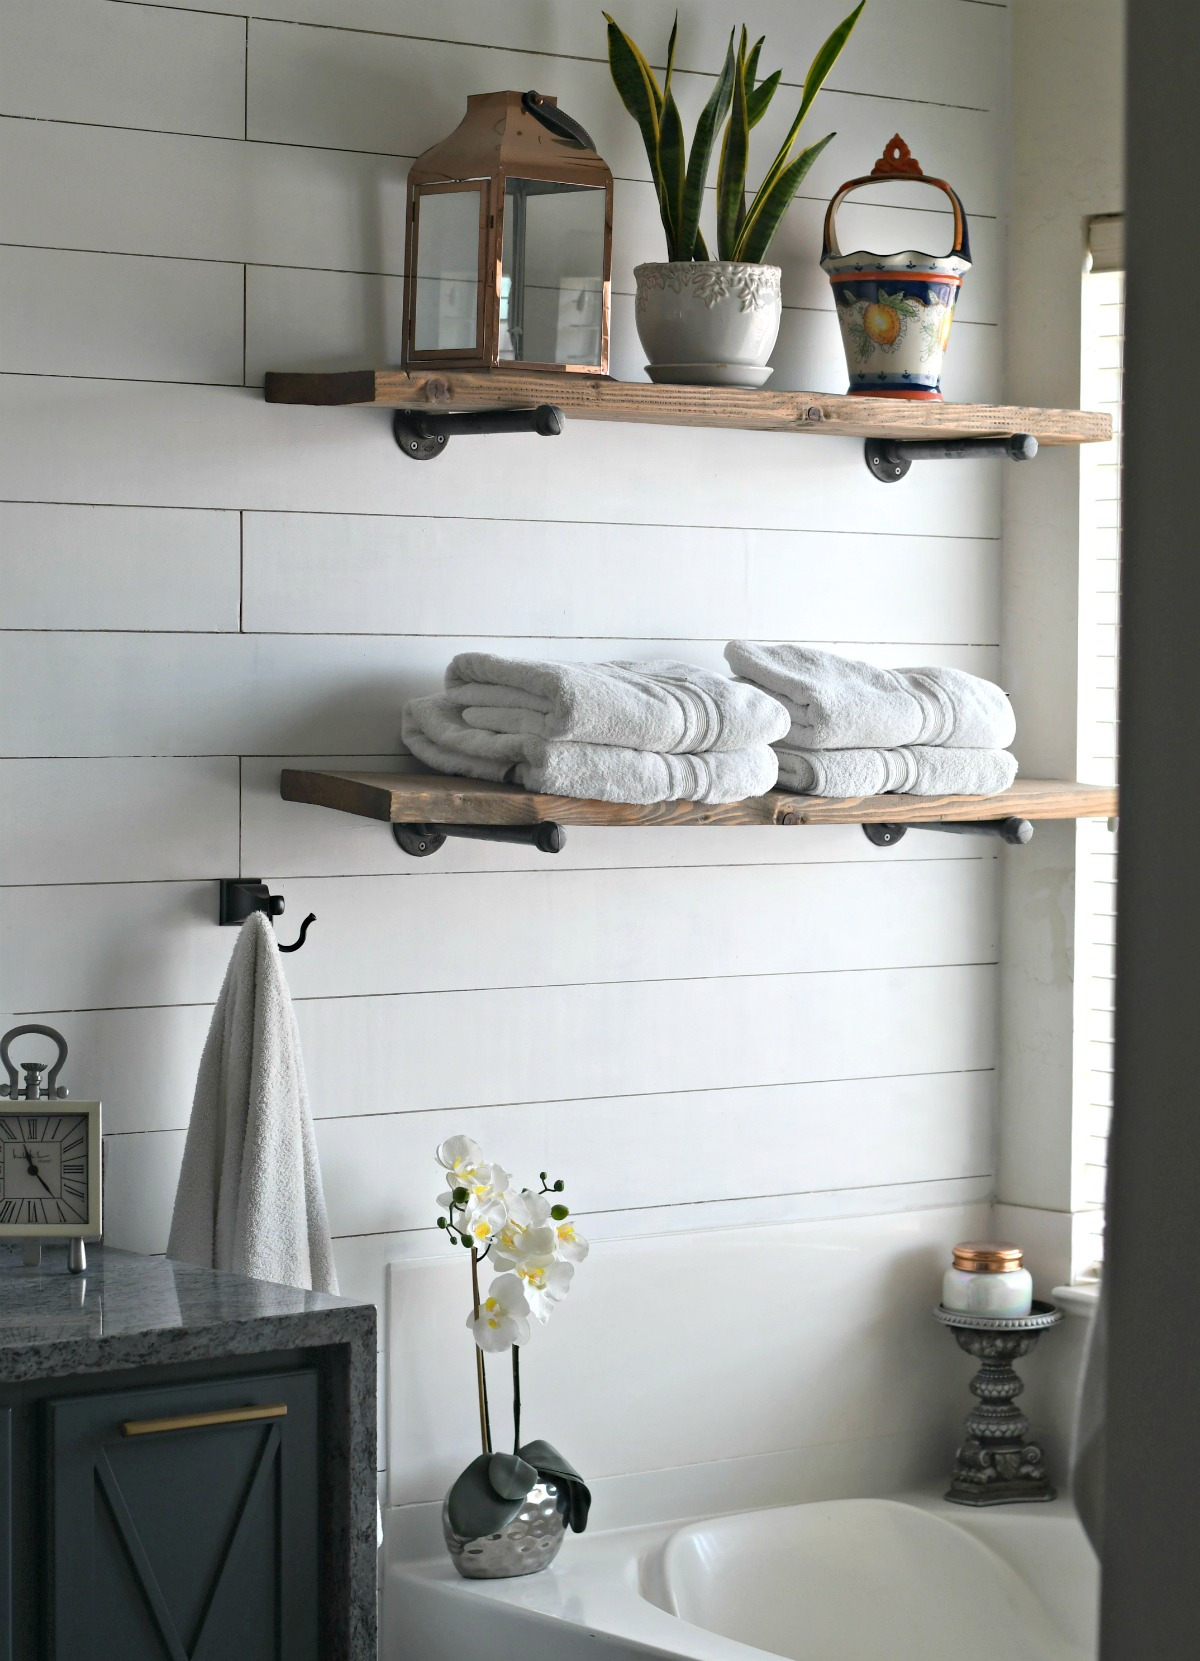 wood and pipe shelving above bath tub for towel storage